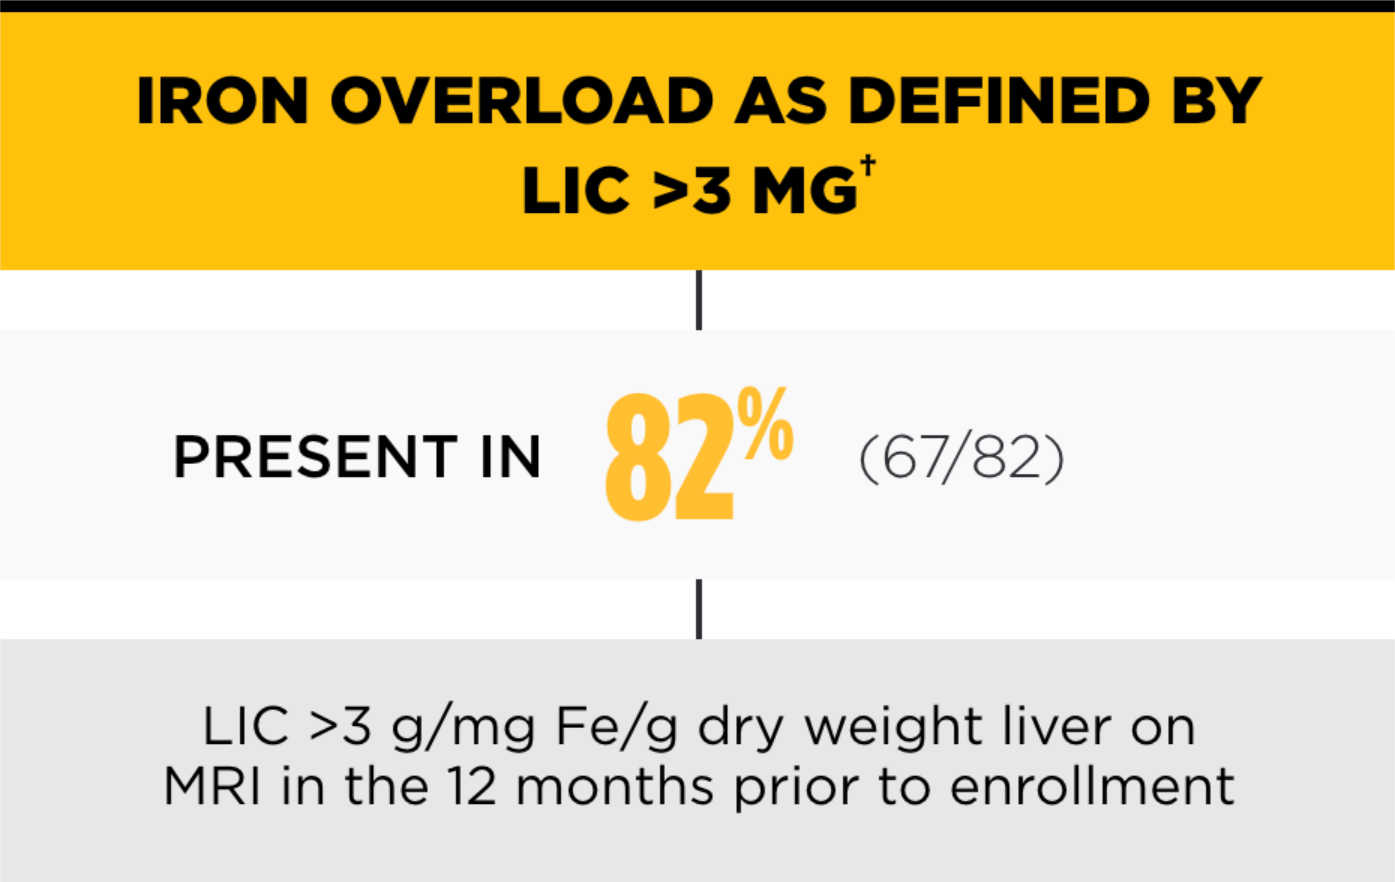 Iron overload as defined by LIC